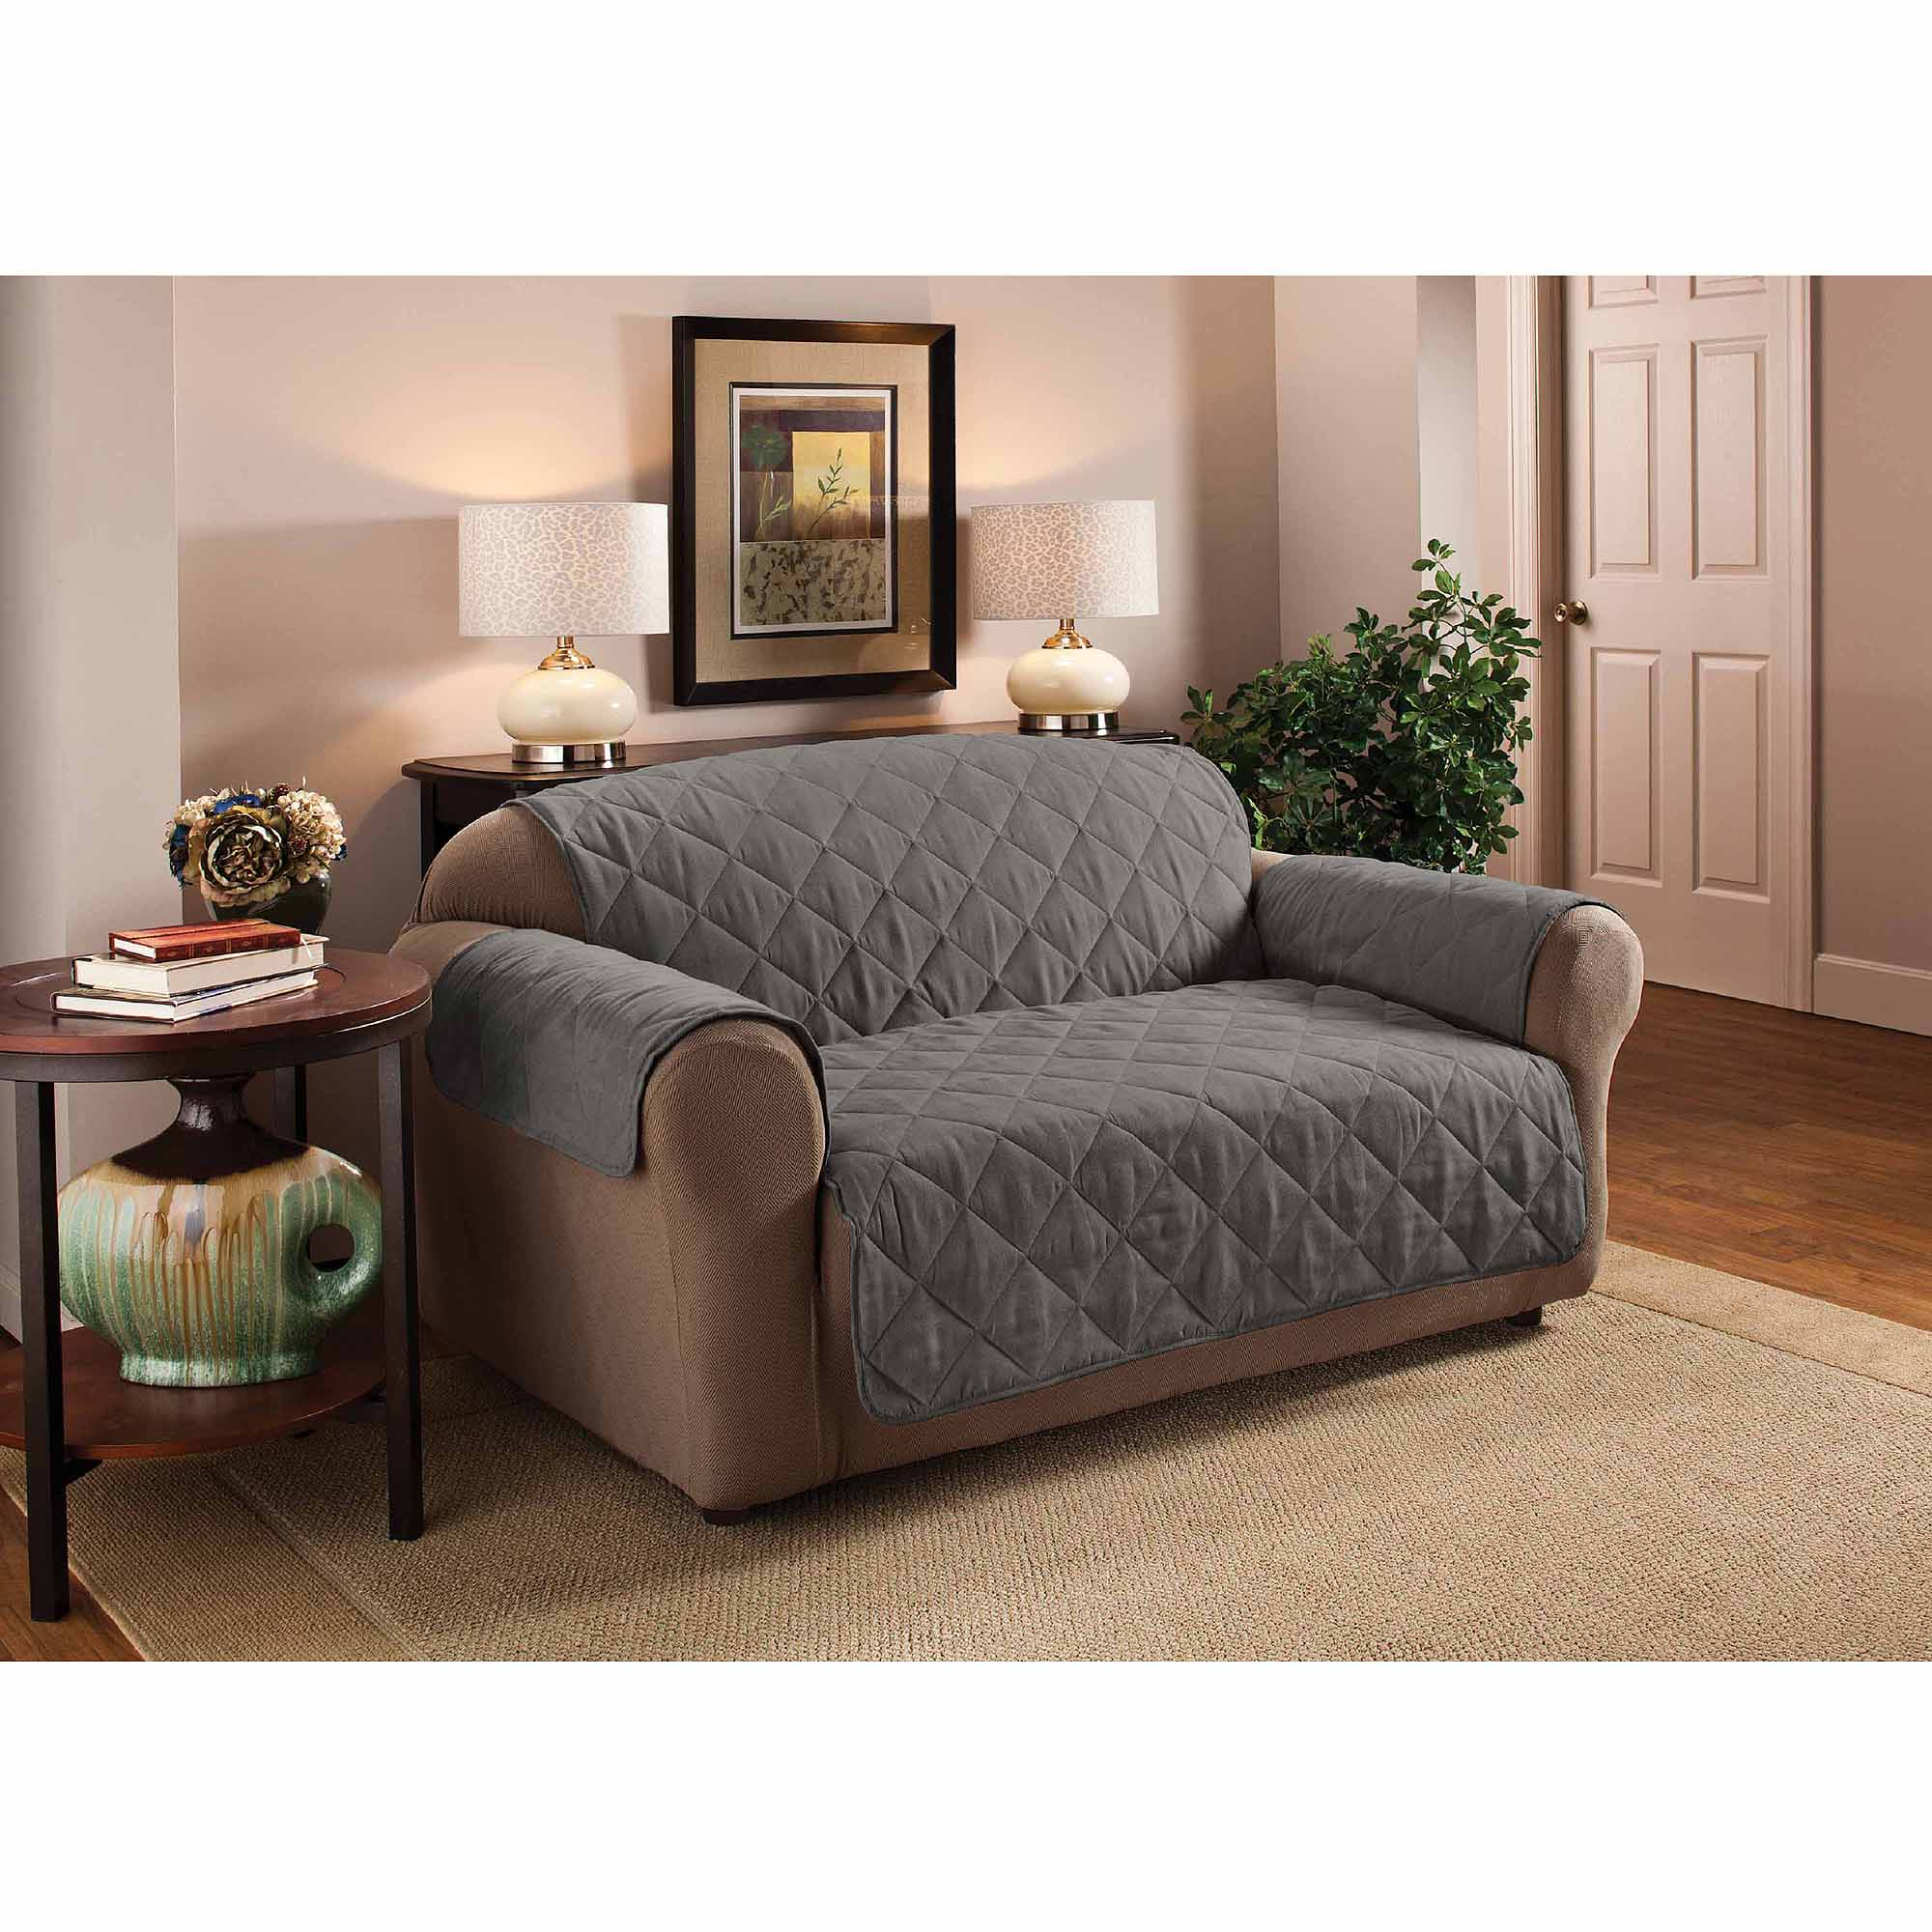 Innovative textile solutions suede furniture protector sofa couch cover